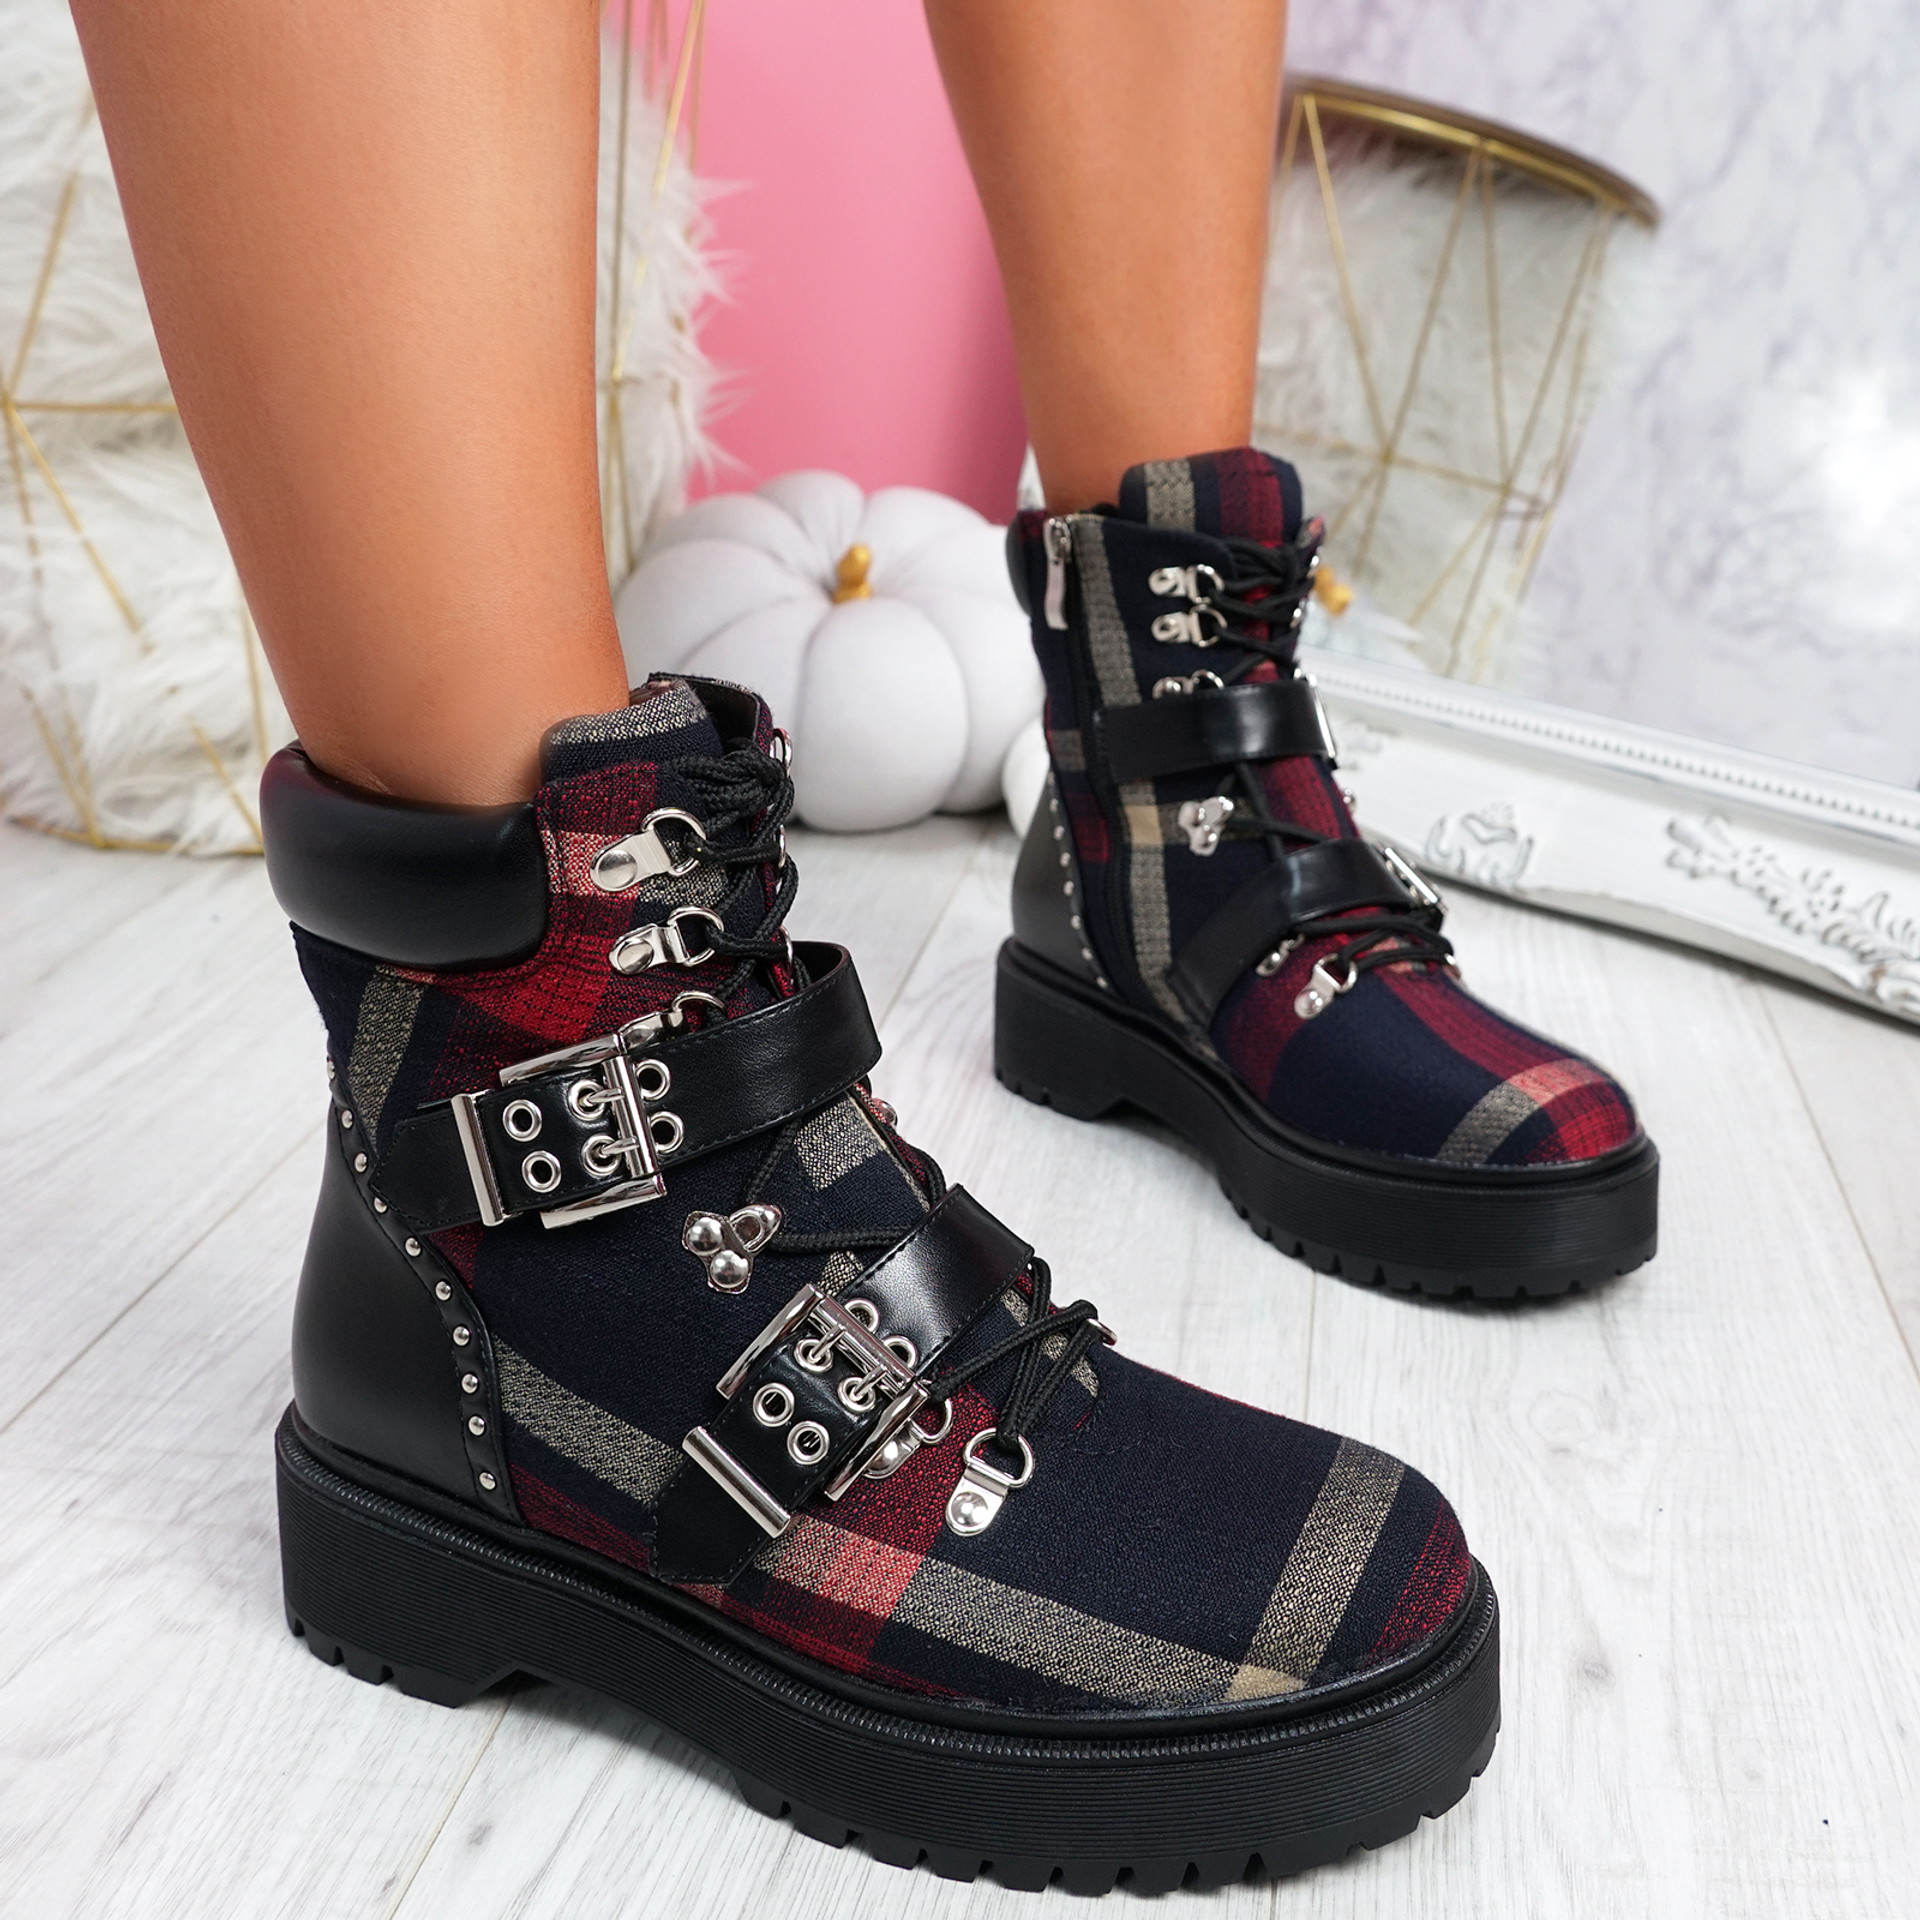 Gevvo Black Buckle Ankle Boots